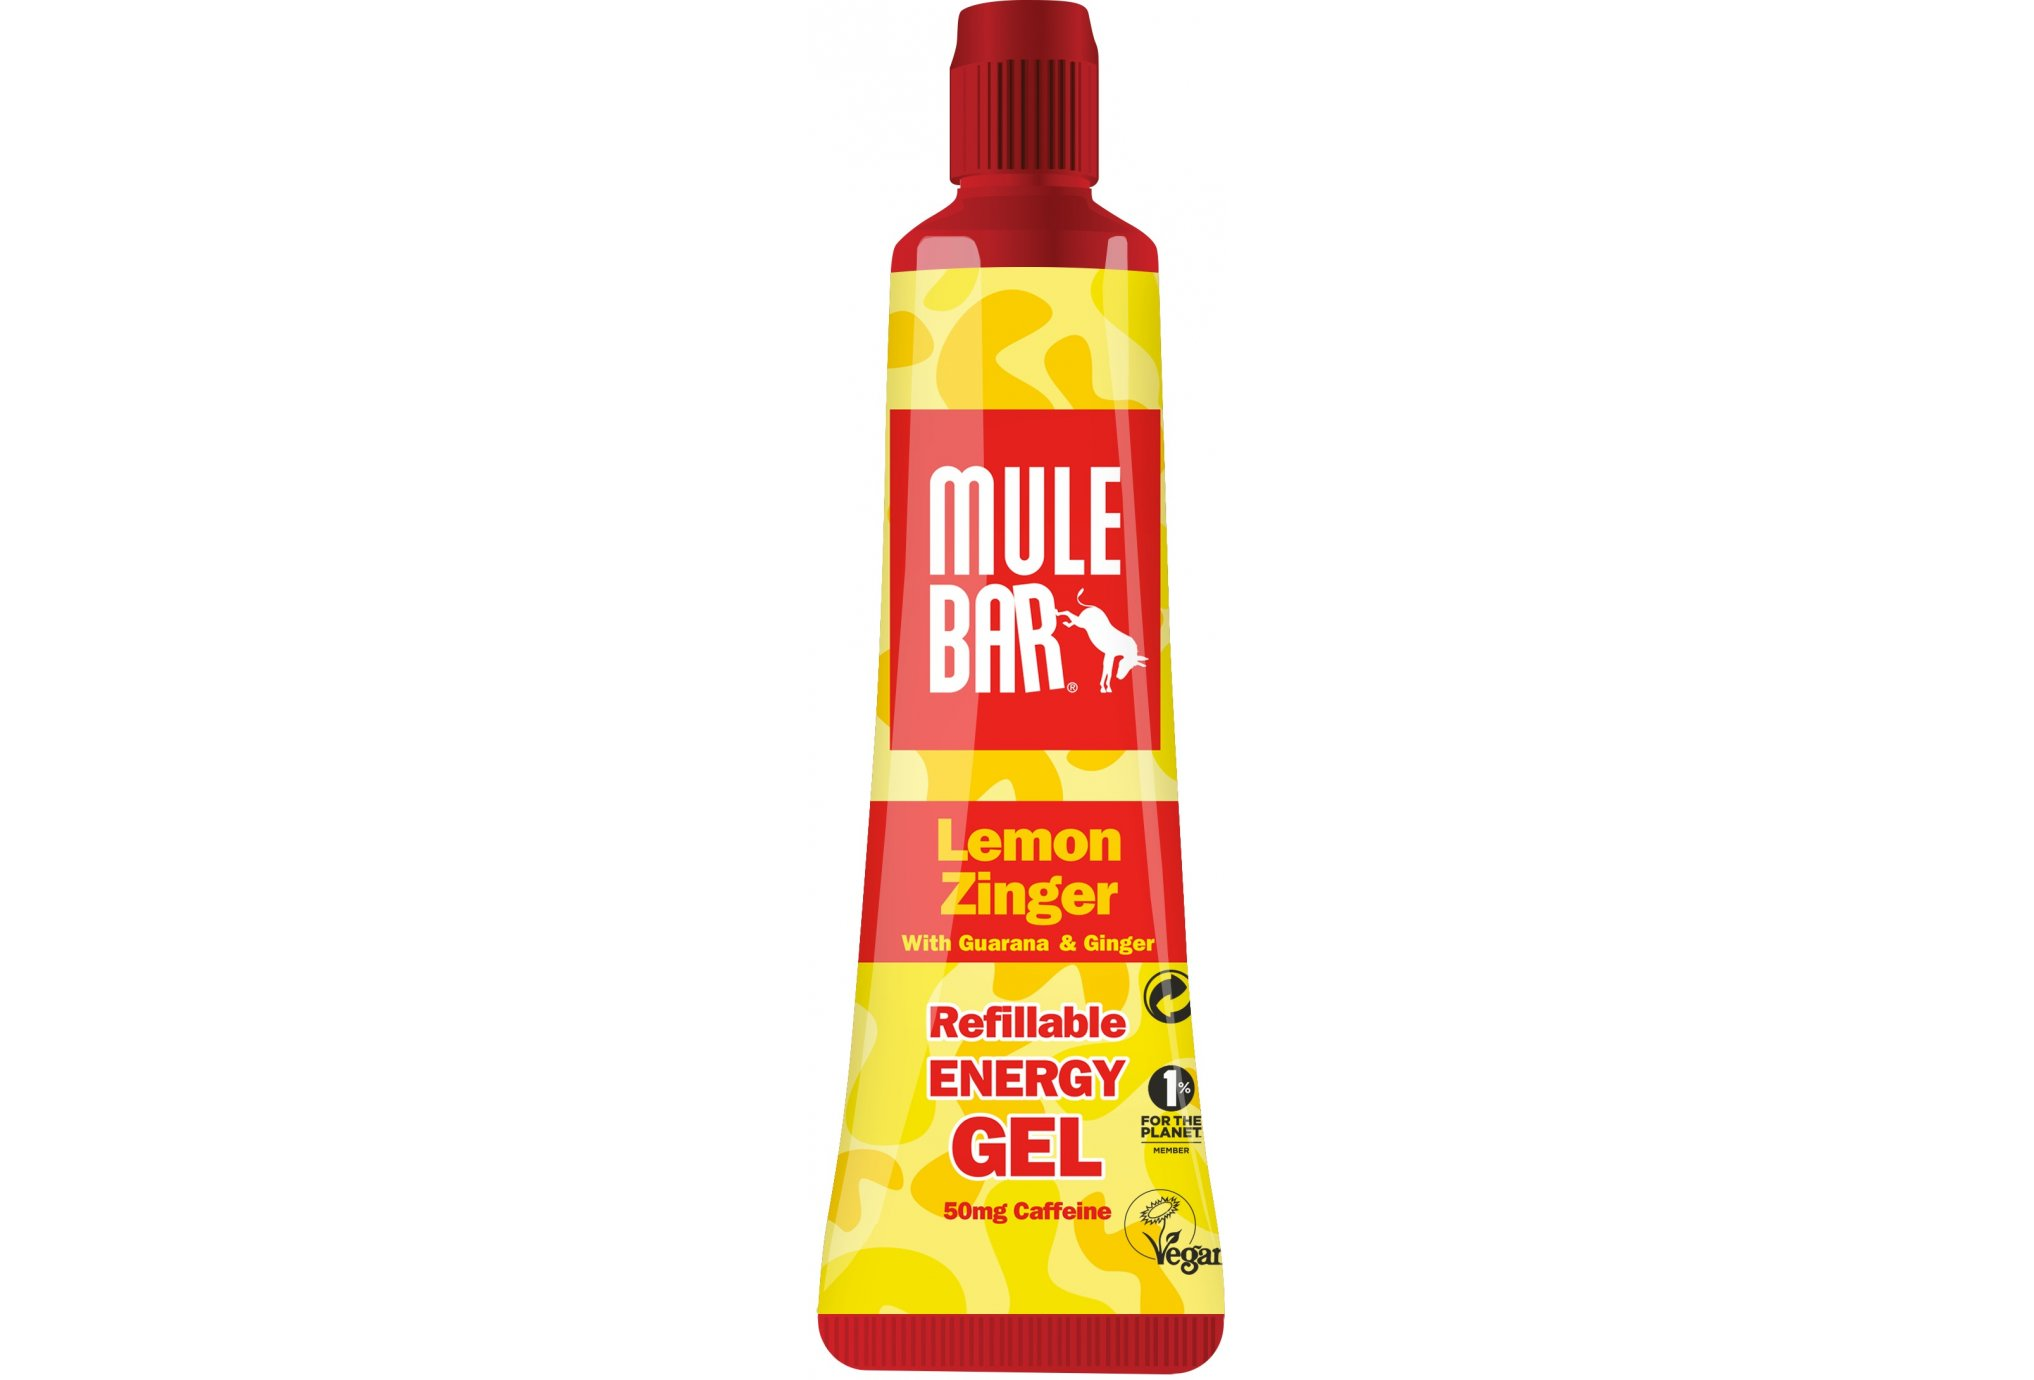 Mulebar Gel Energy Lemon Zinger Vegan - Citron/Gingembre Diététique Gels